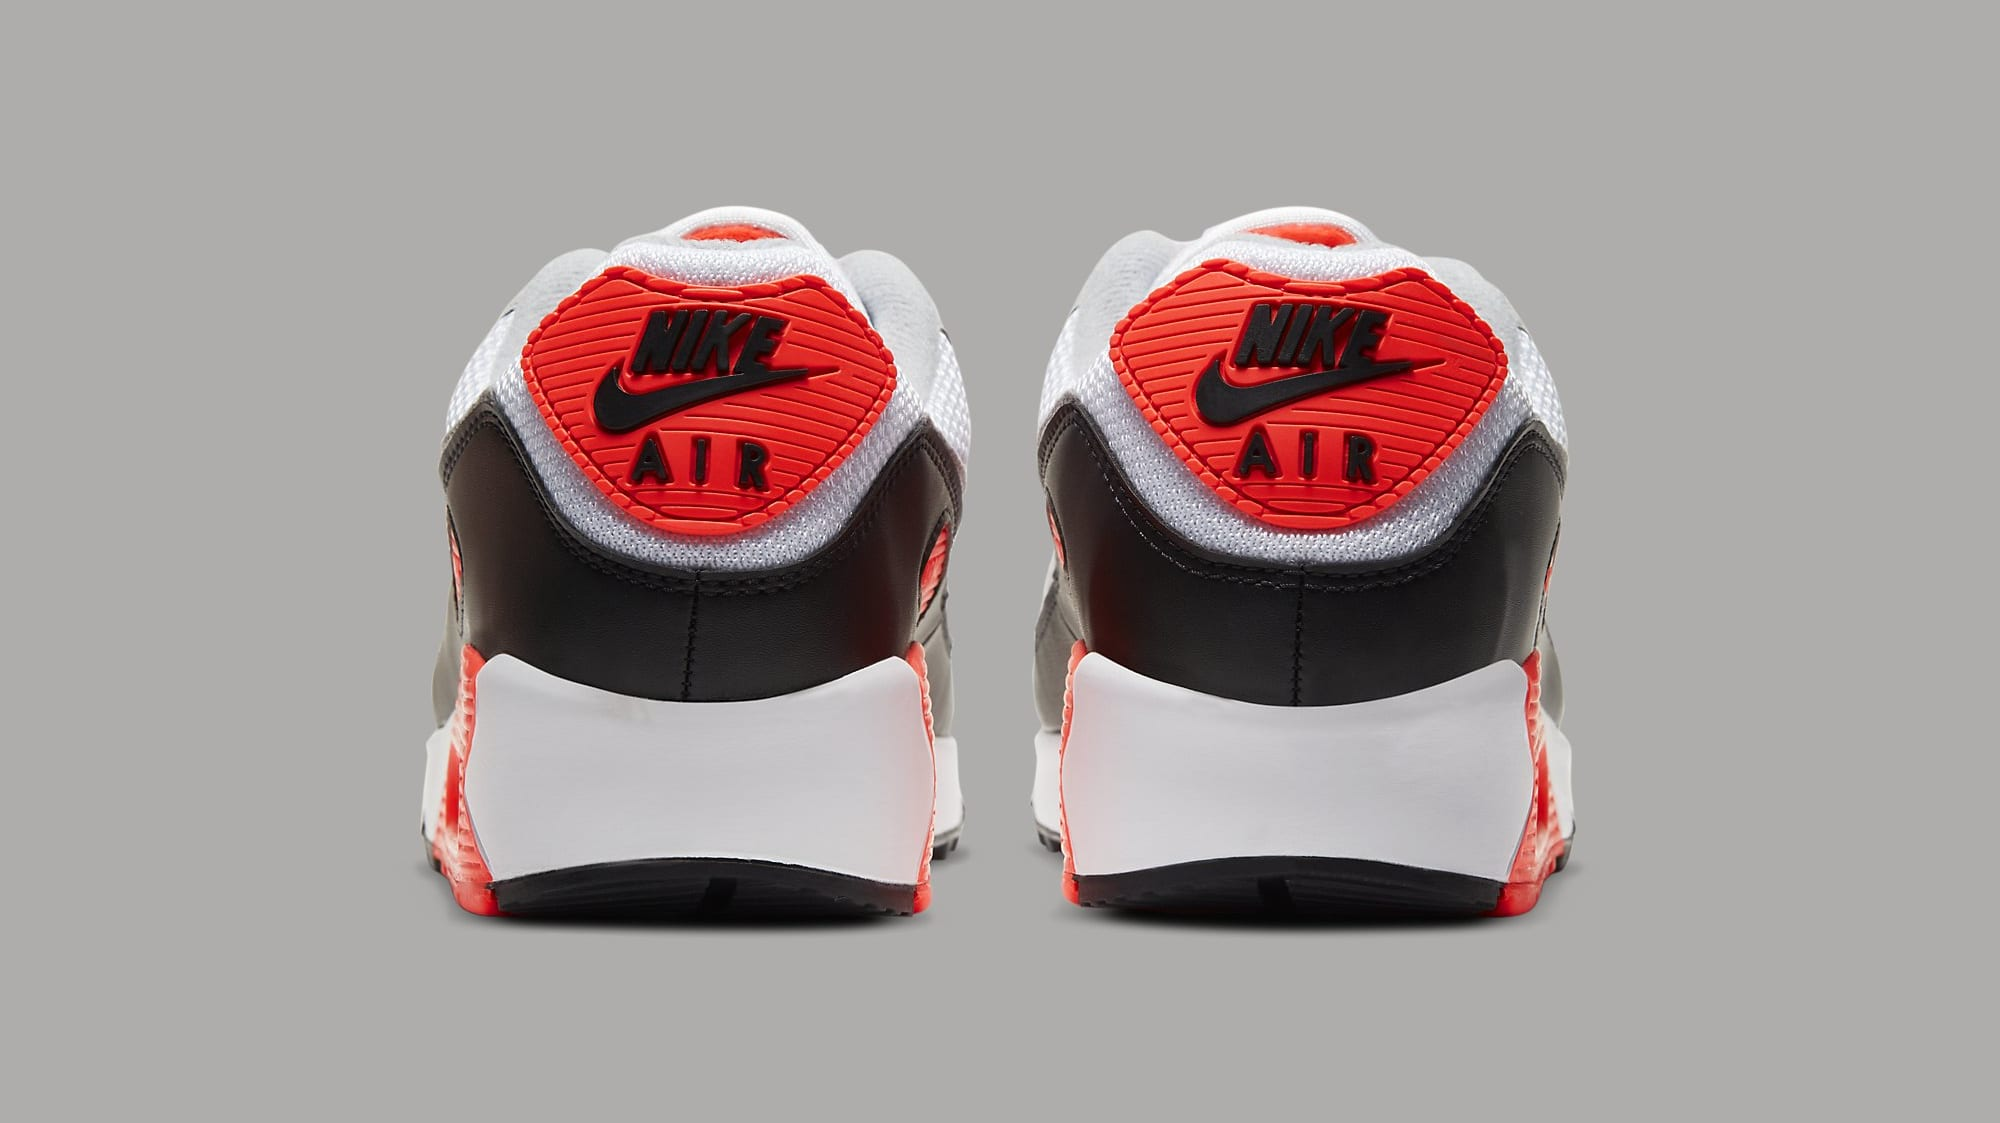 Nike Air Max 90 'Infrared' CT1685-100 Heel